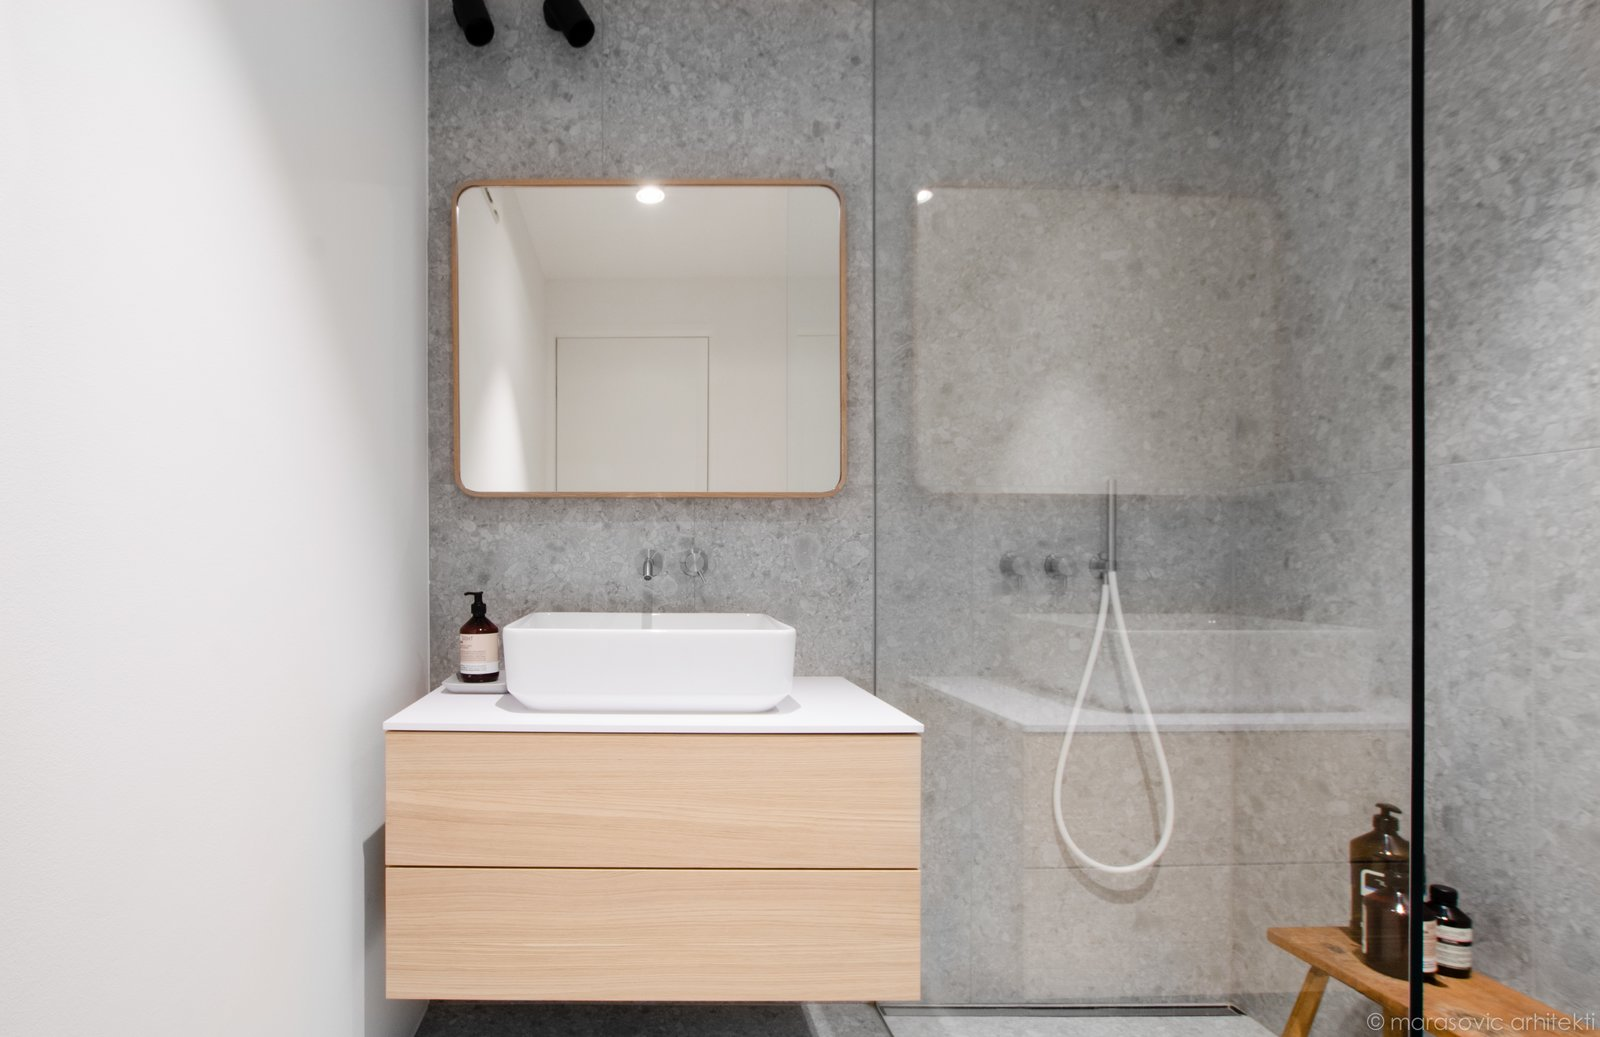 Bath Room, Wall Lighting, Pedestal Sink, Open Shower, Undermount Tub, Laminate Counter, Ceramic Tile Floor, and Terrazzo Floor  Photos from Apartment M8